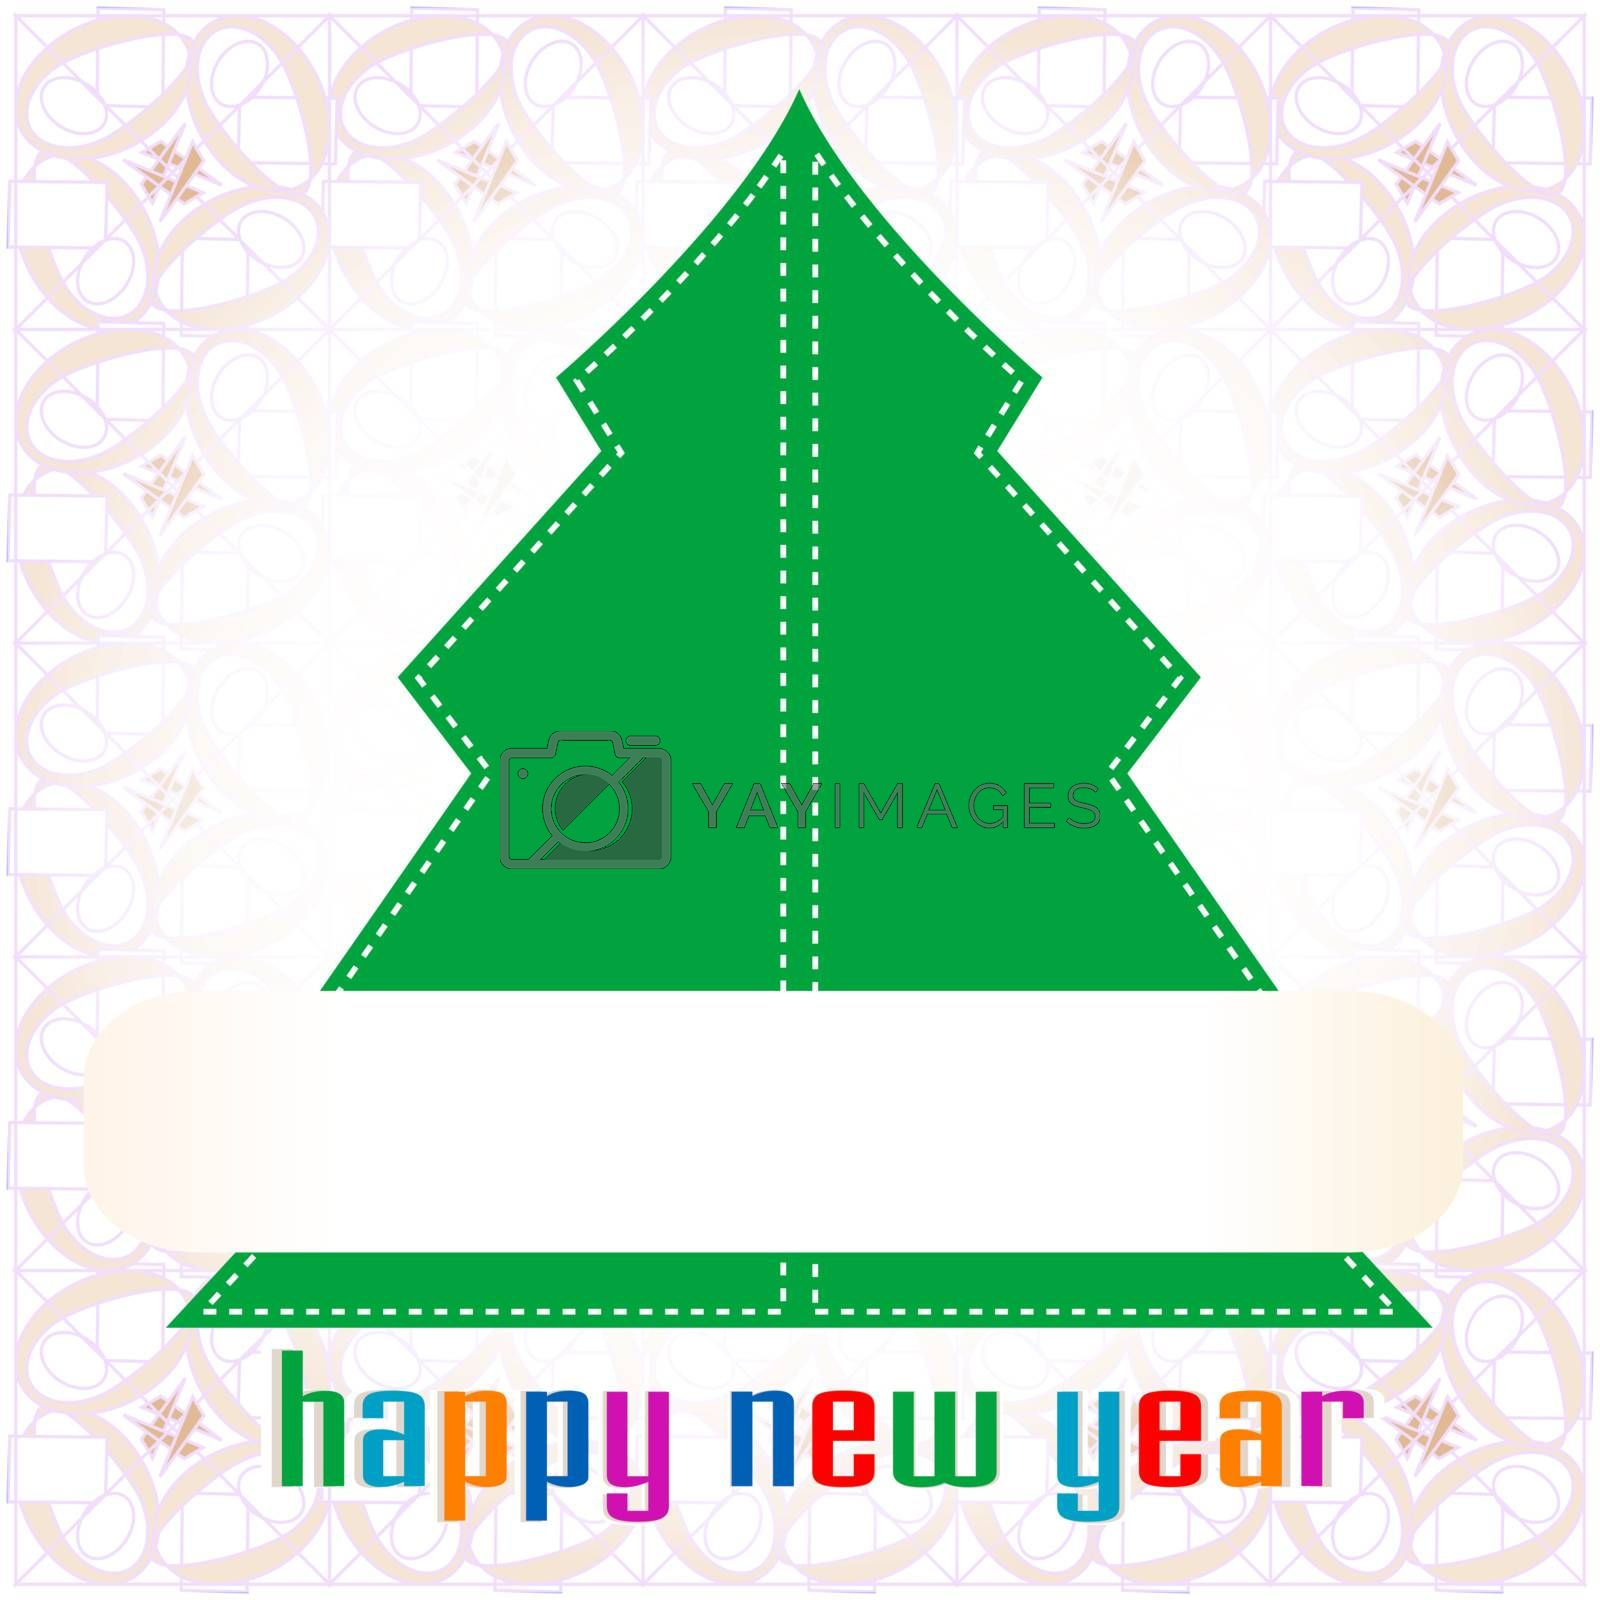 Colorful illustration with decorated green Christmas tree by fotoscool